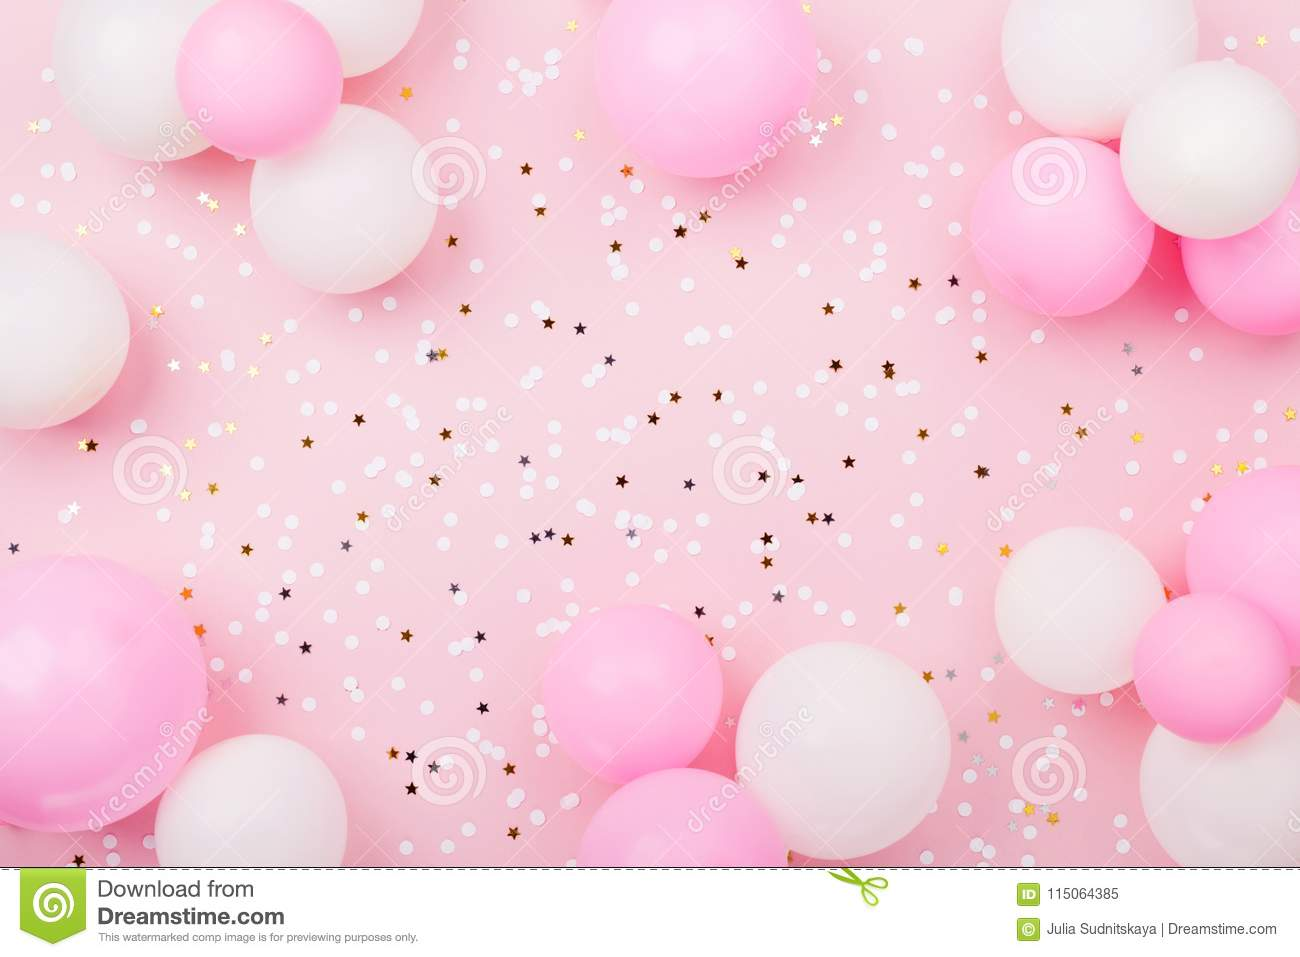 Pastel Pink Table With Frame From Balloons And Confetti For Birthday Top View Flat Lay Composition